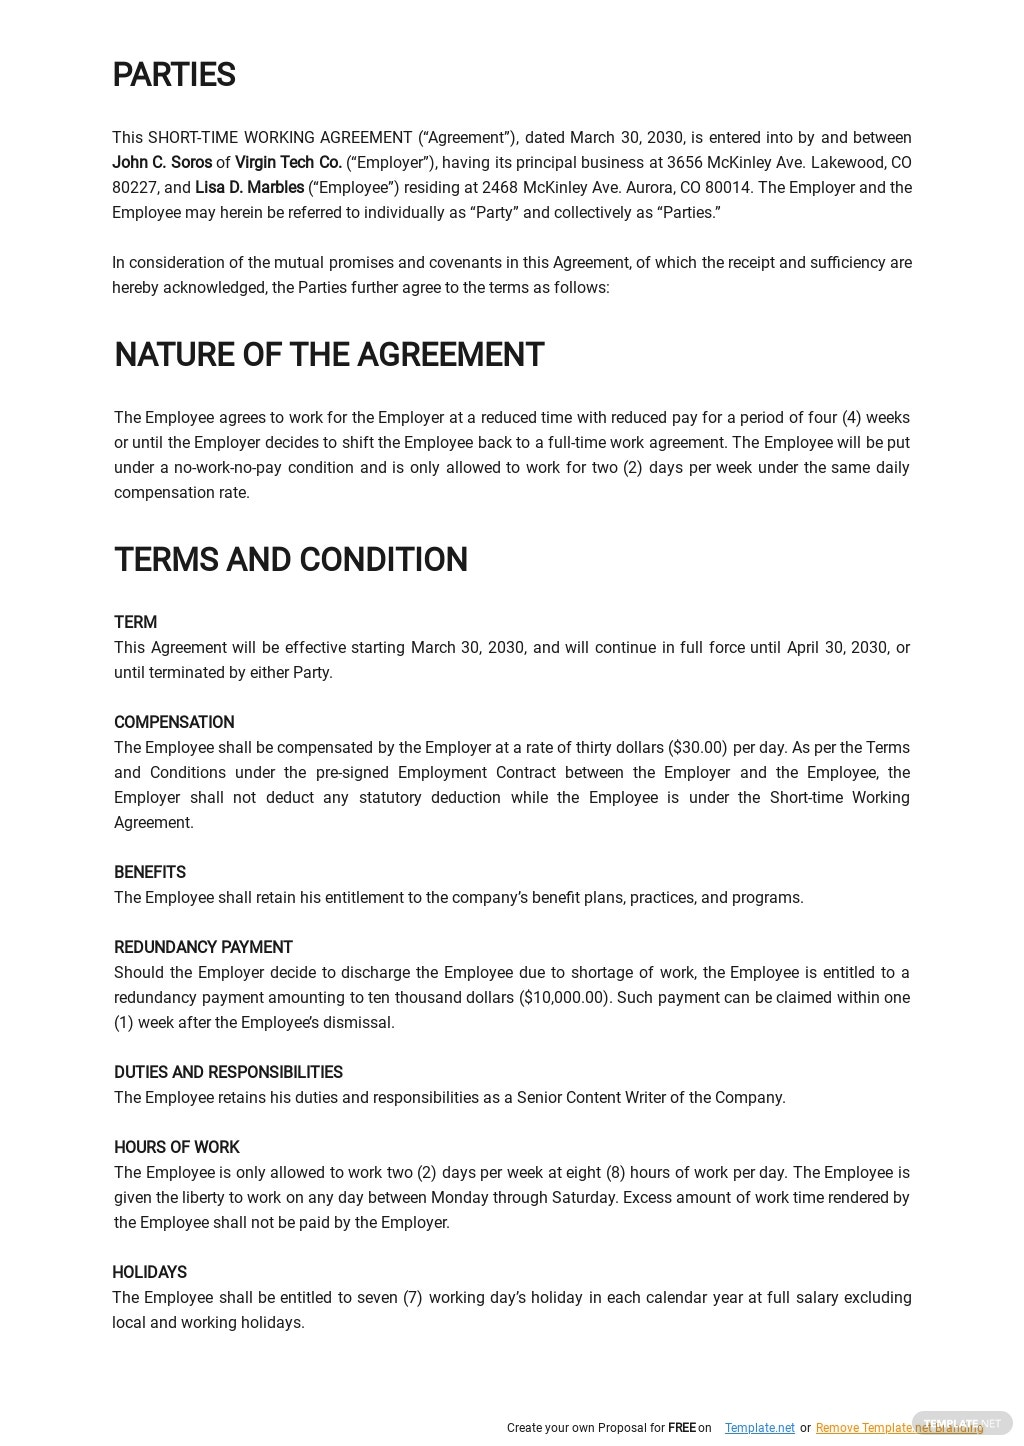 Short Time Working Agreement Template 1.jpe